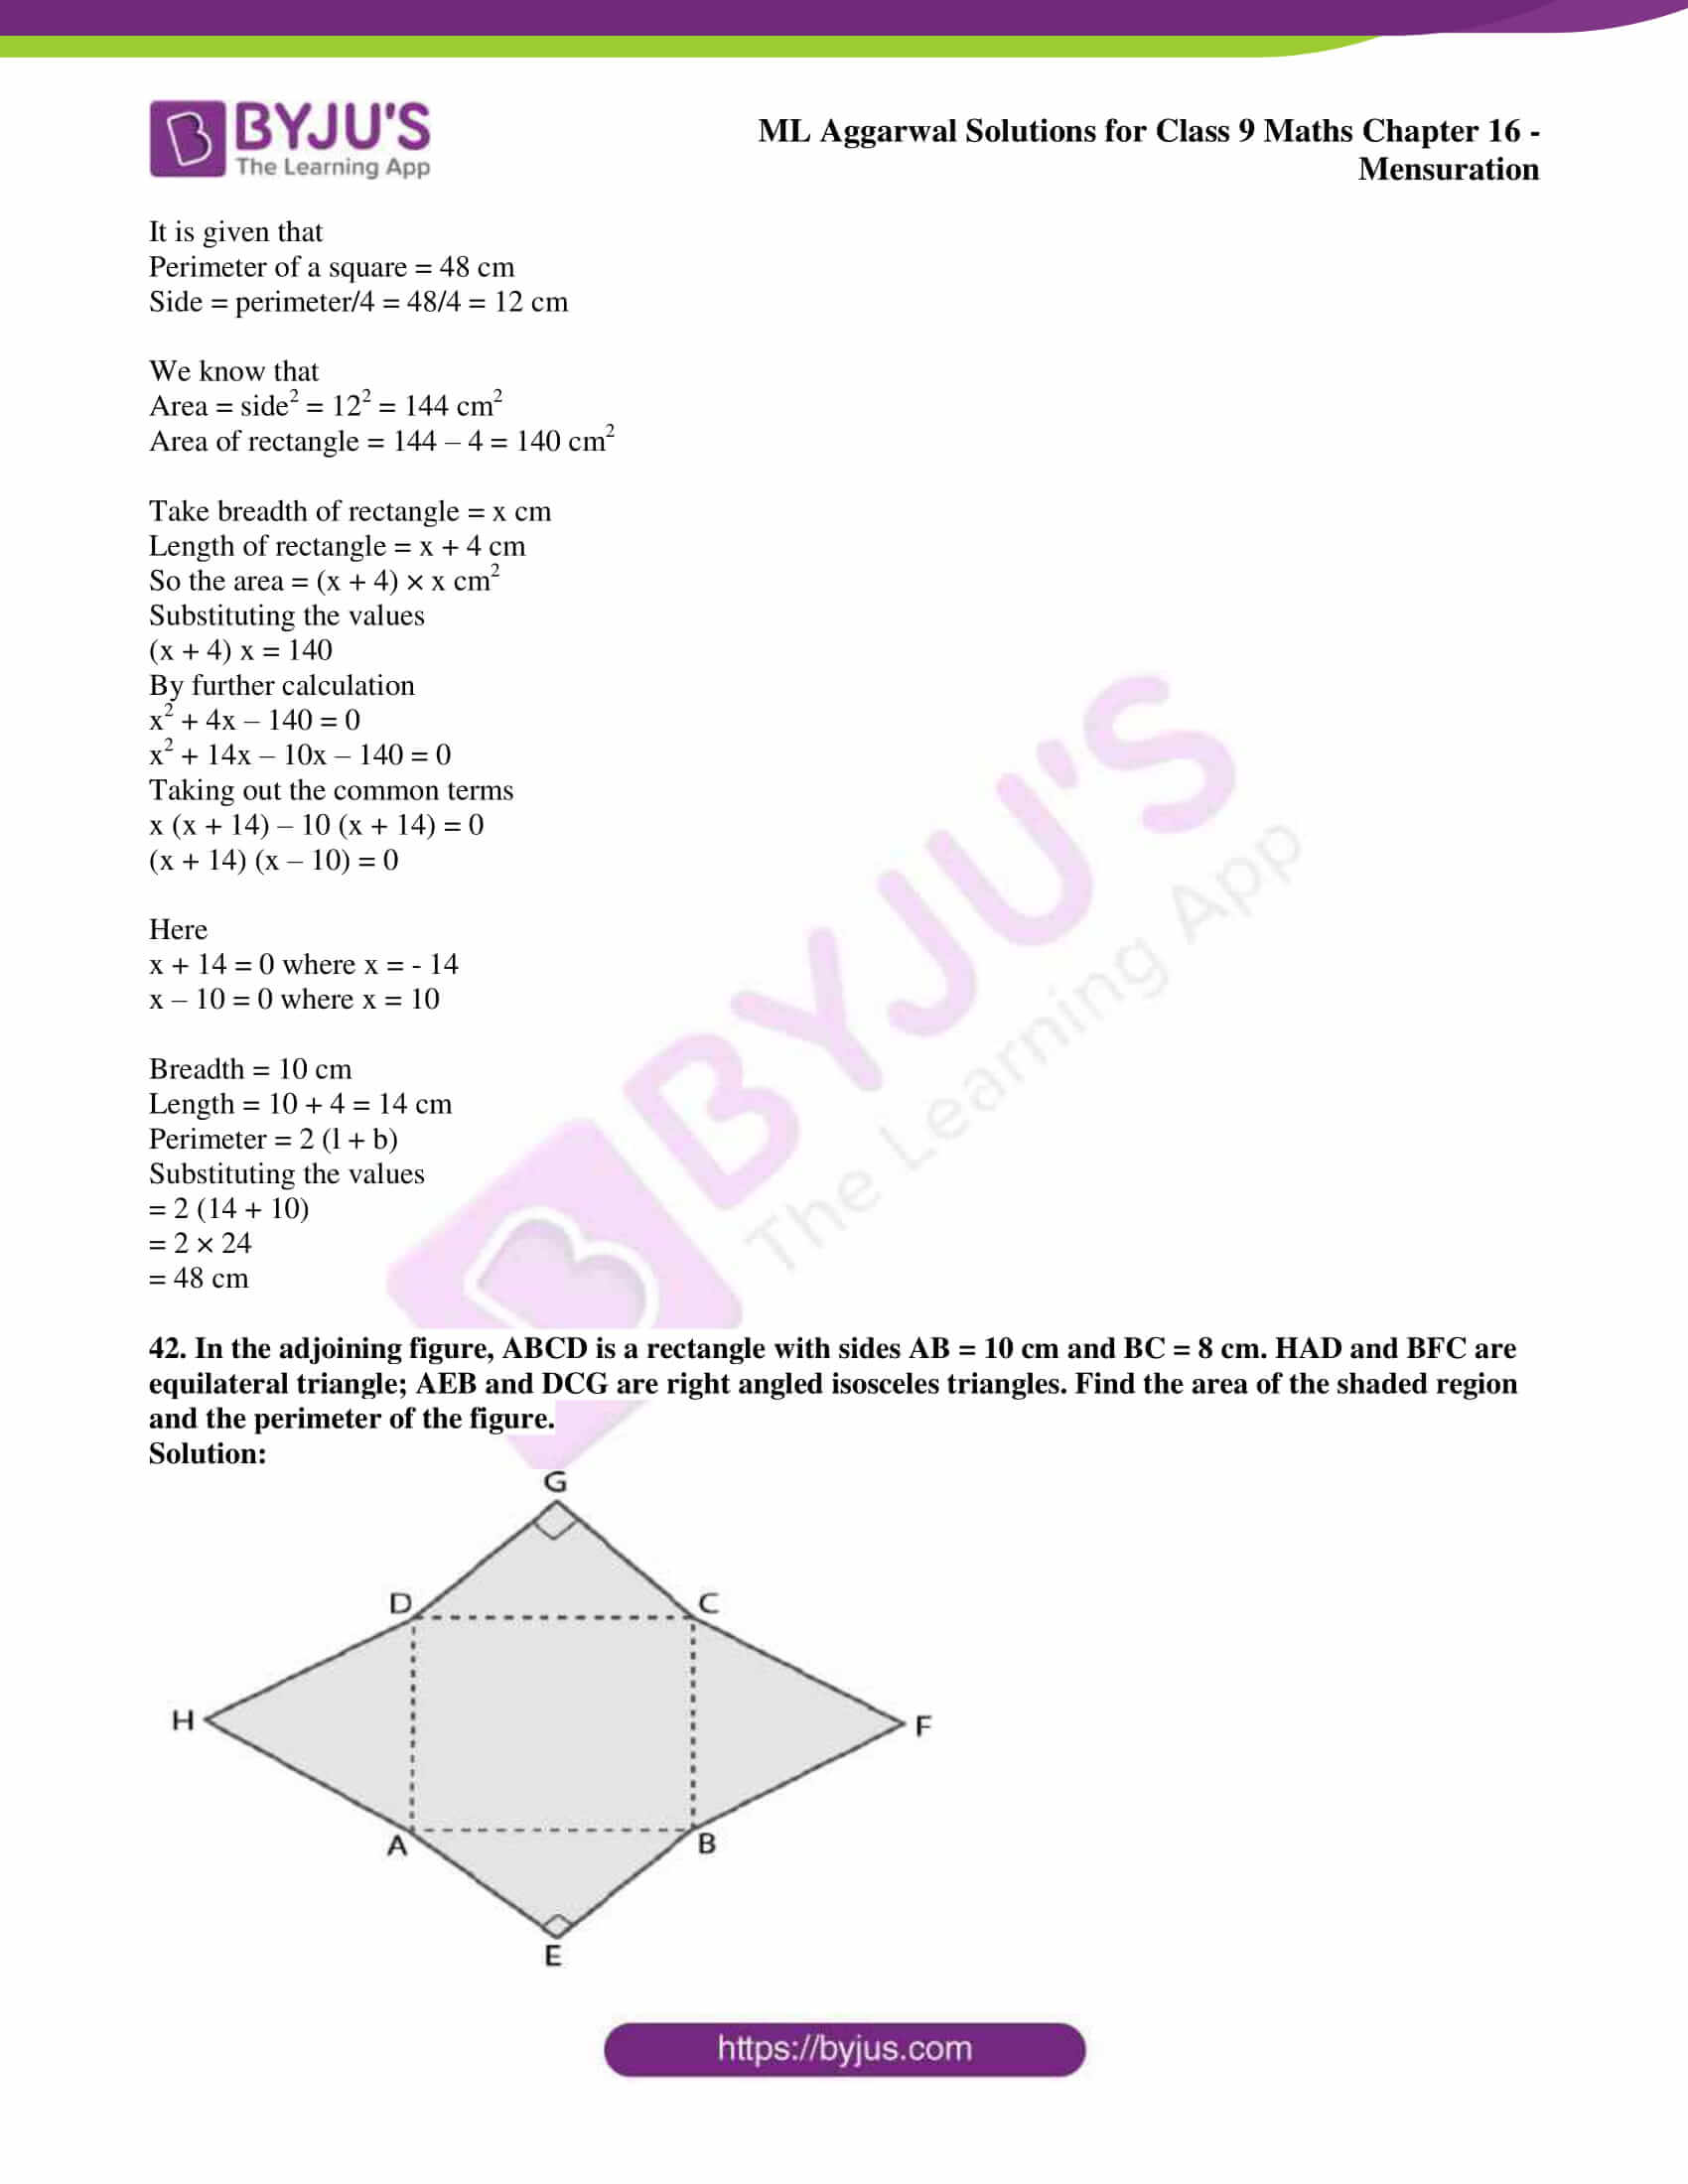 ml aggarwal solutions for class 9 maths chapter 16 063